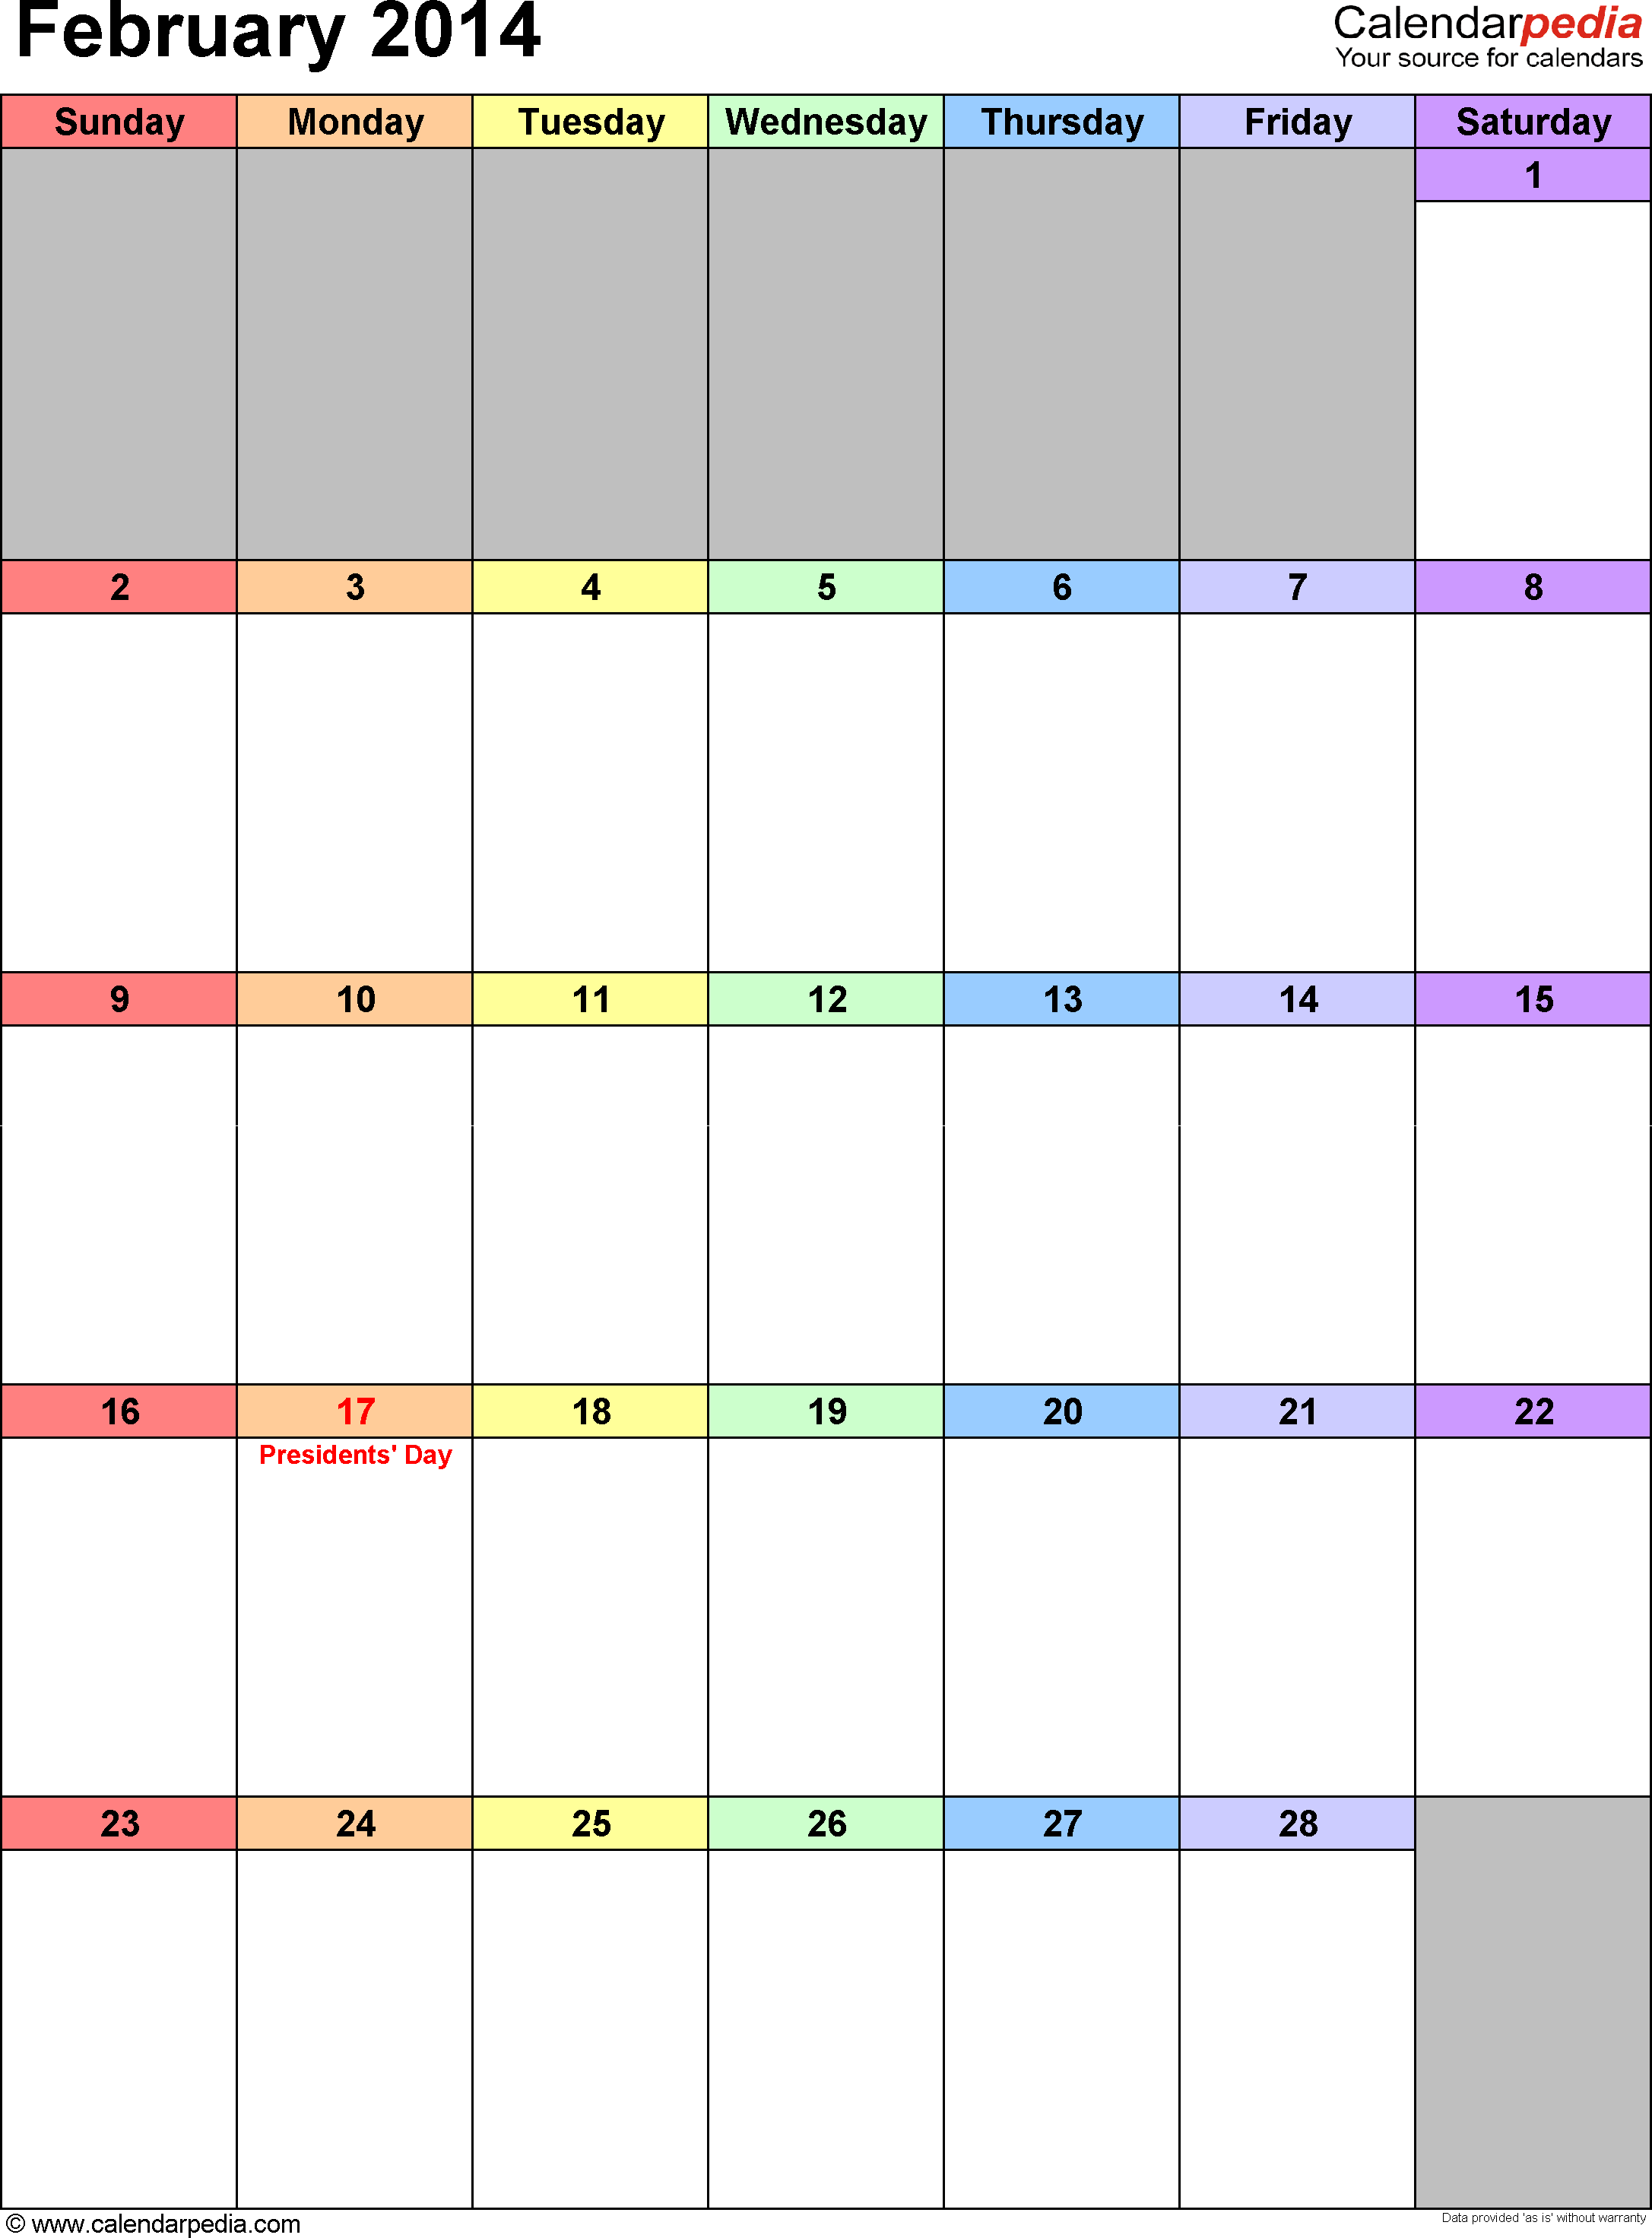 February 2014 calendar as printable Word, Excel & PDF templates